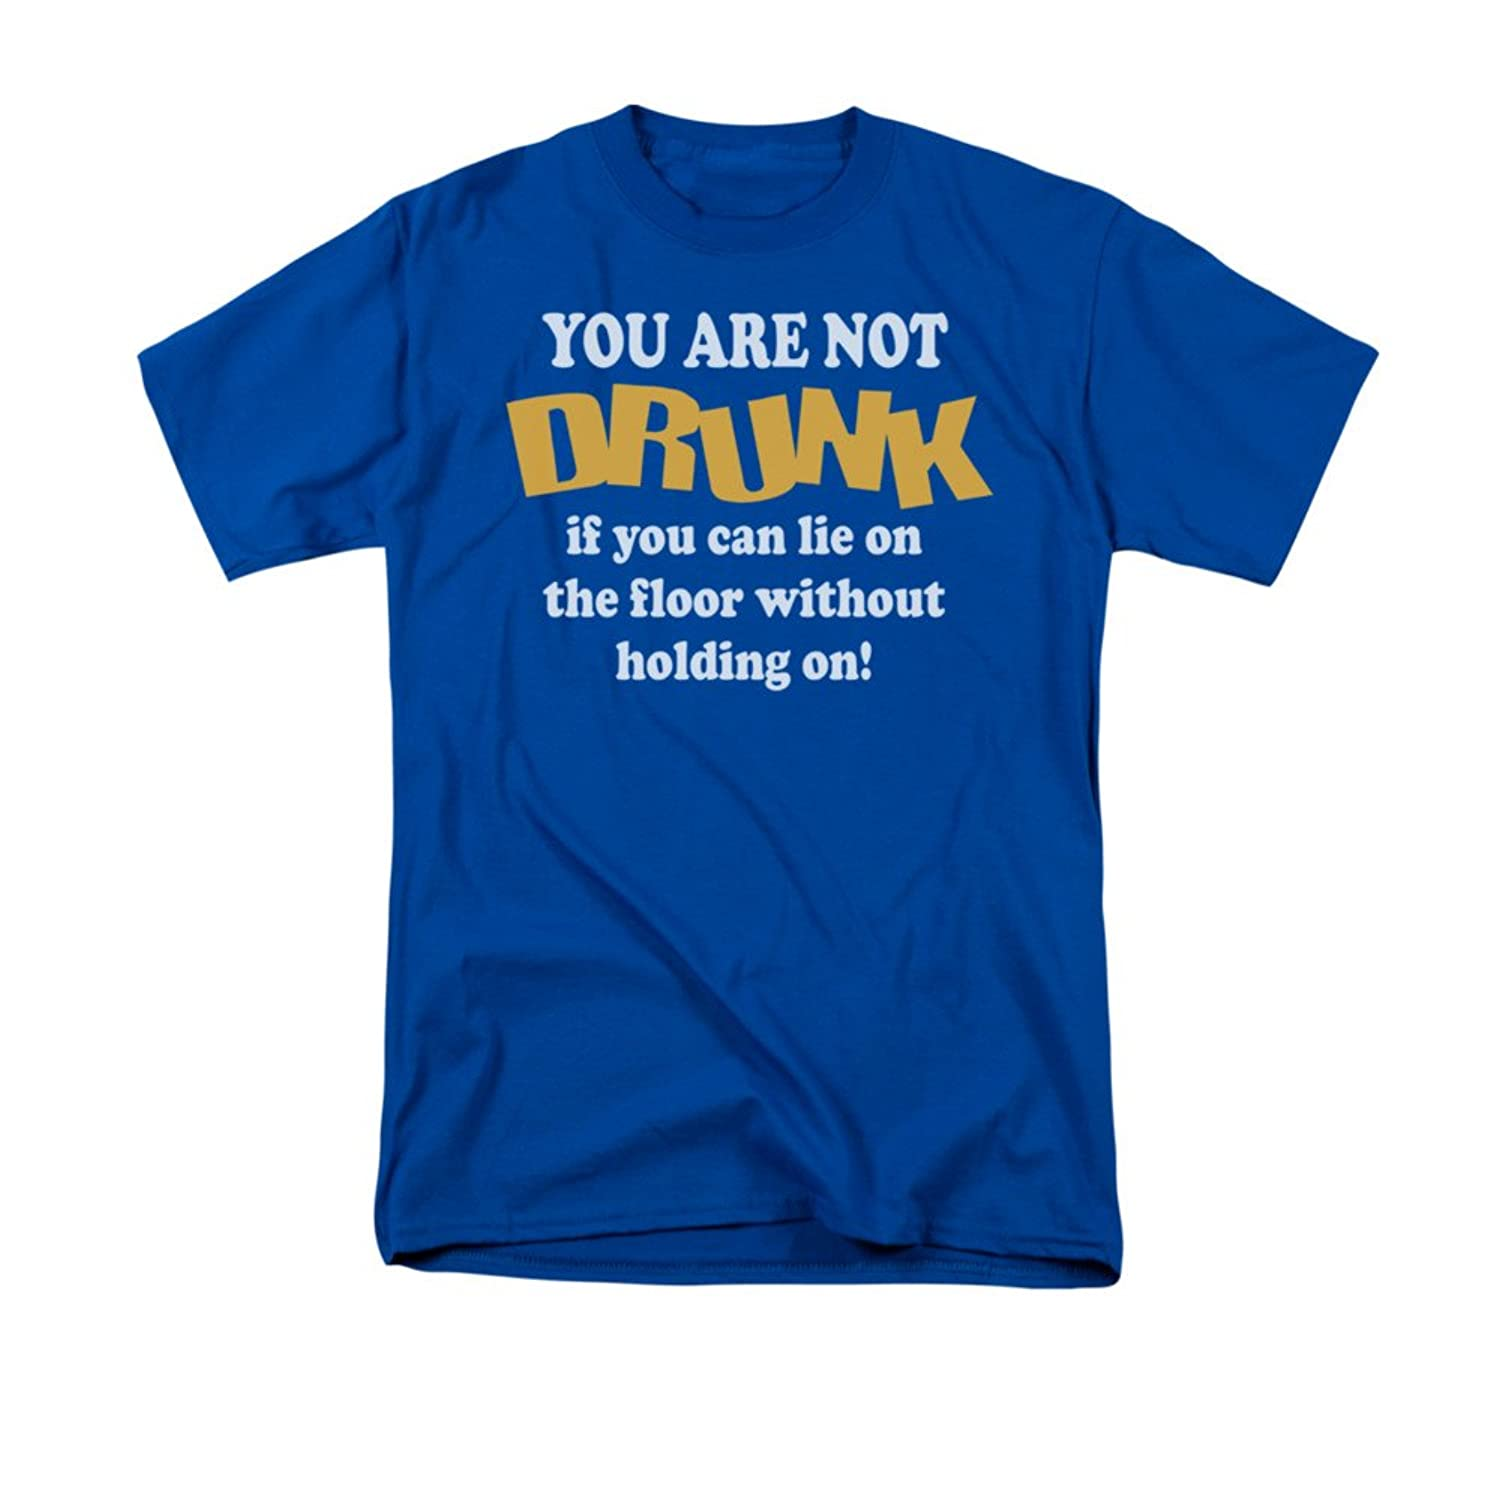 You Are Not Drunk If You Can Lie On The Floor Without Holding On! Adult T-Shirt